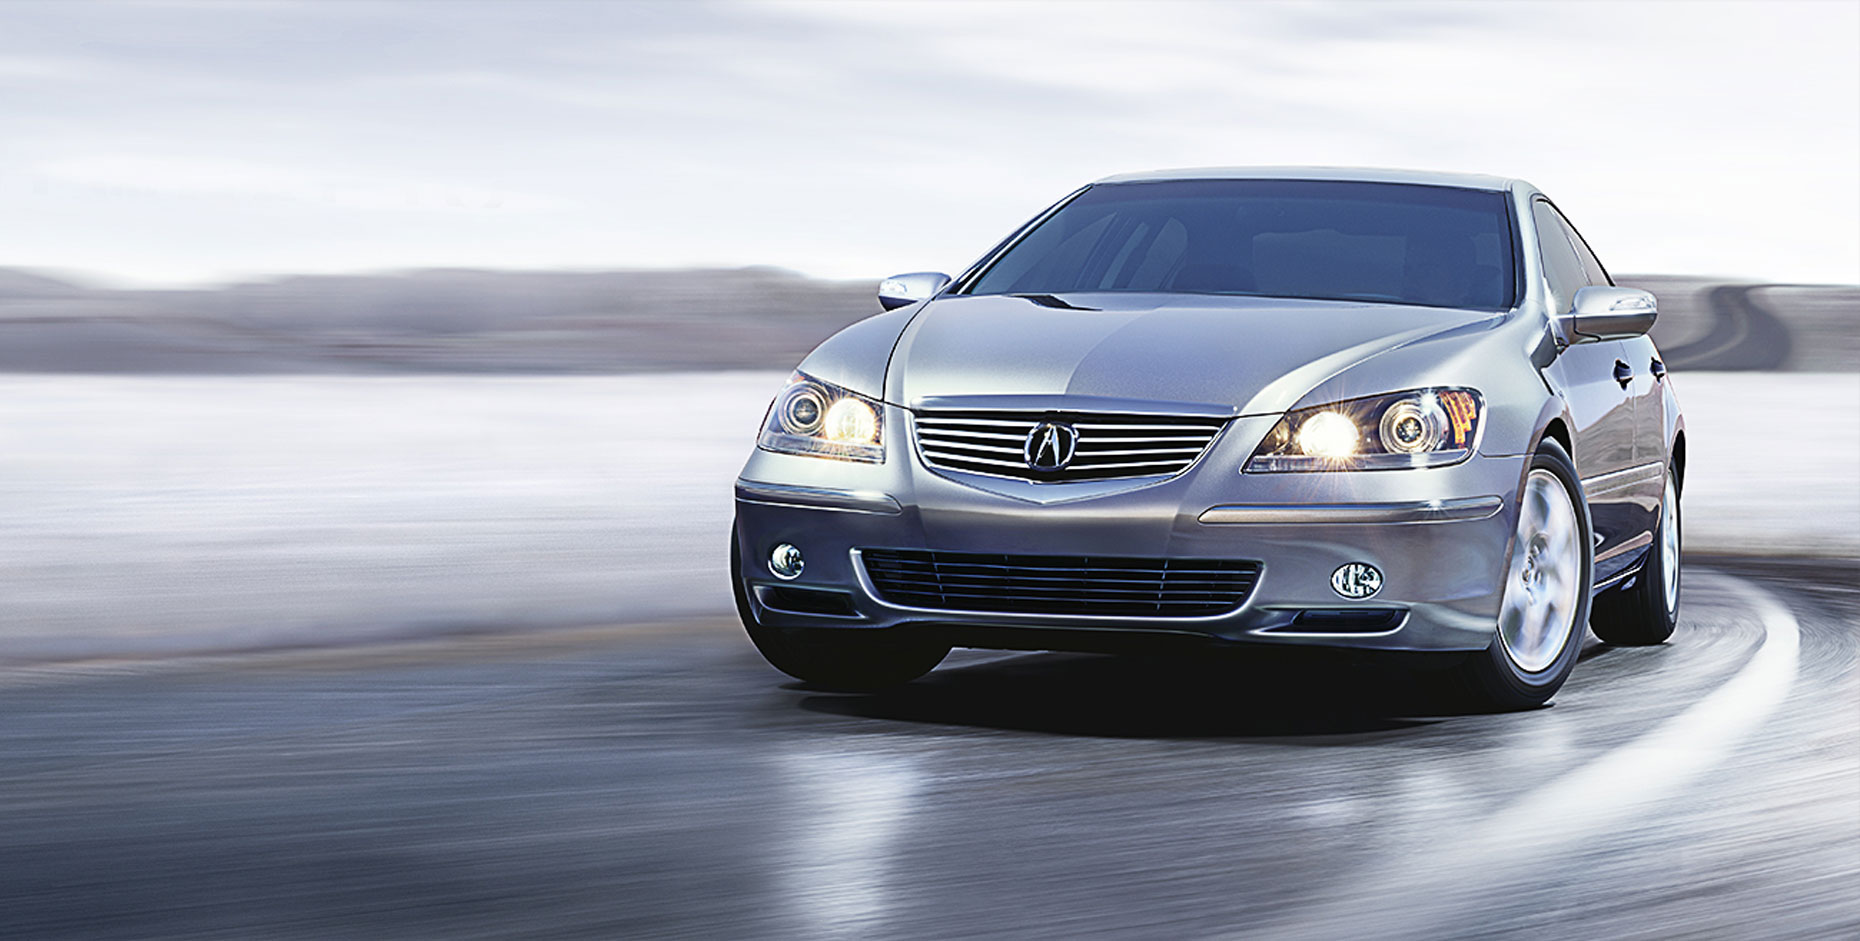 Acura-RL-Outdoor